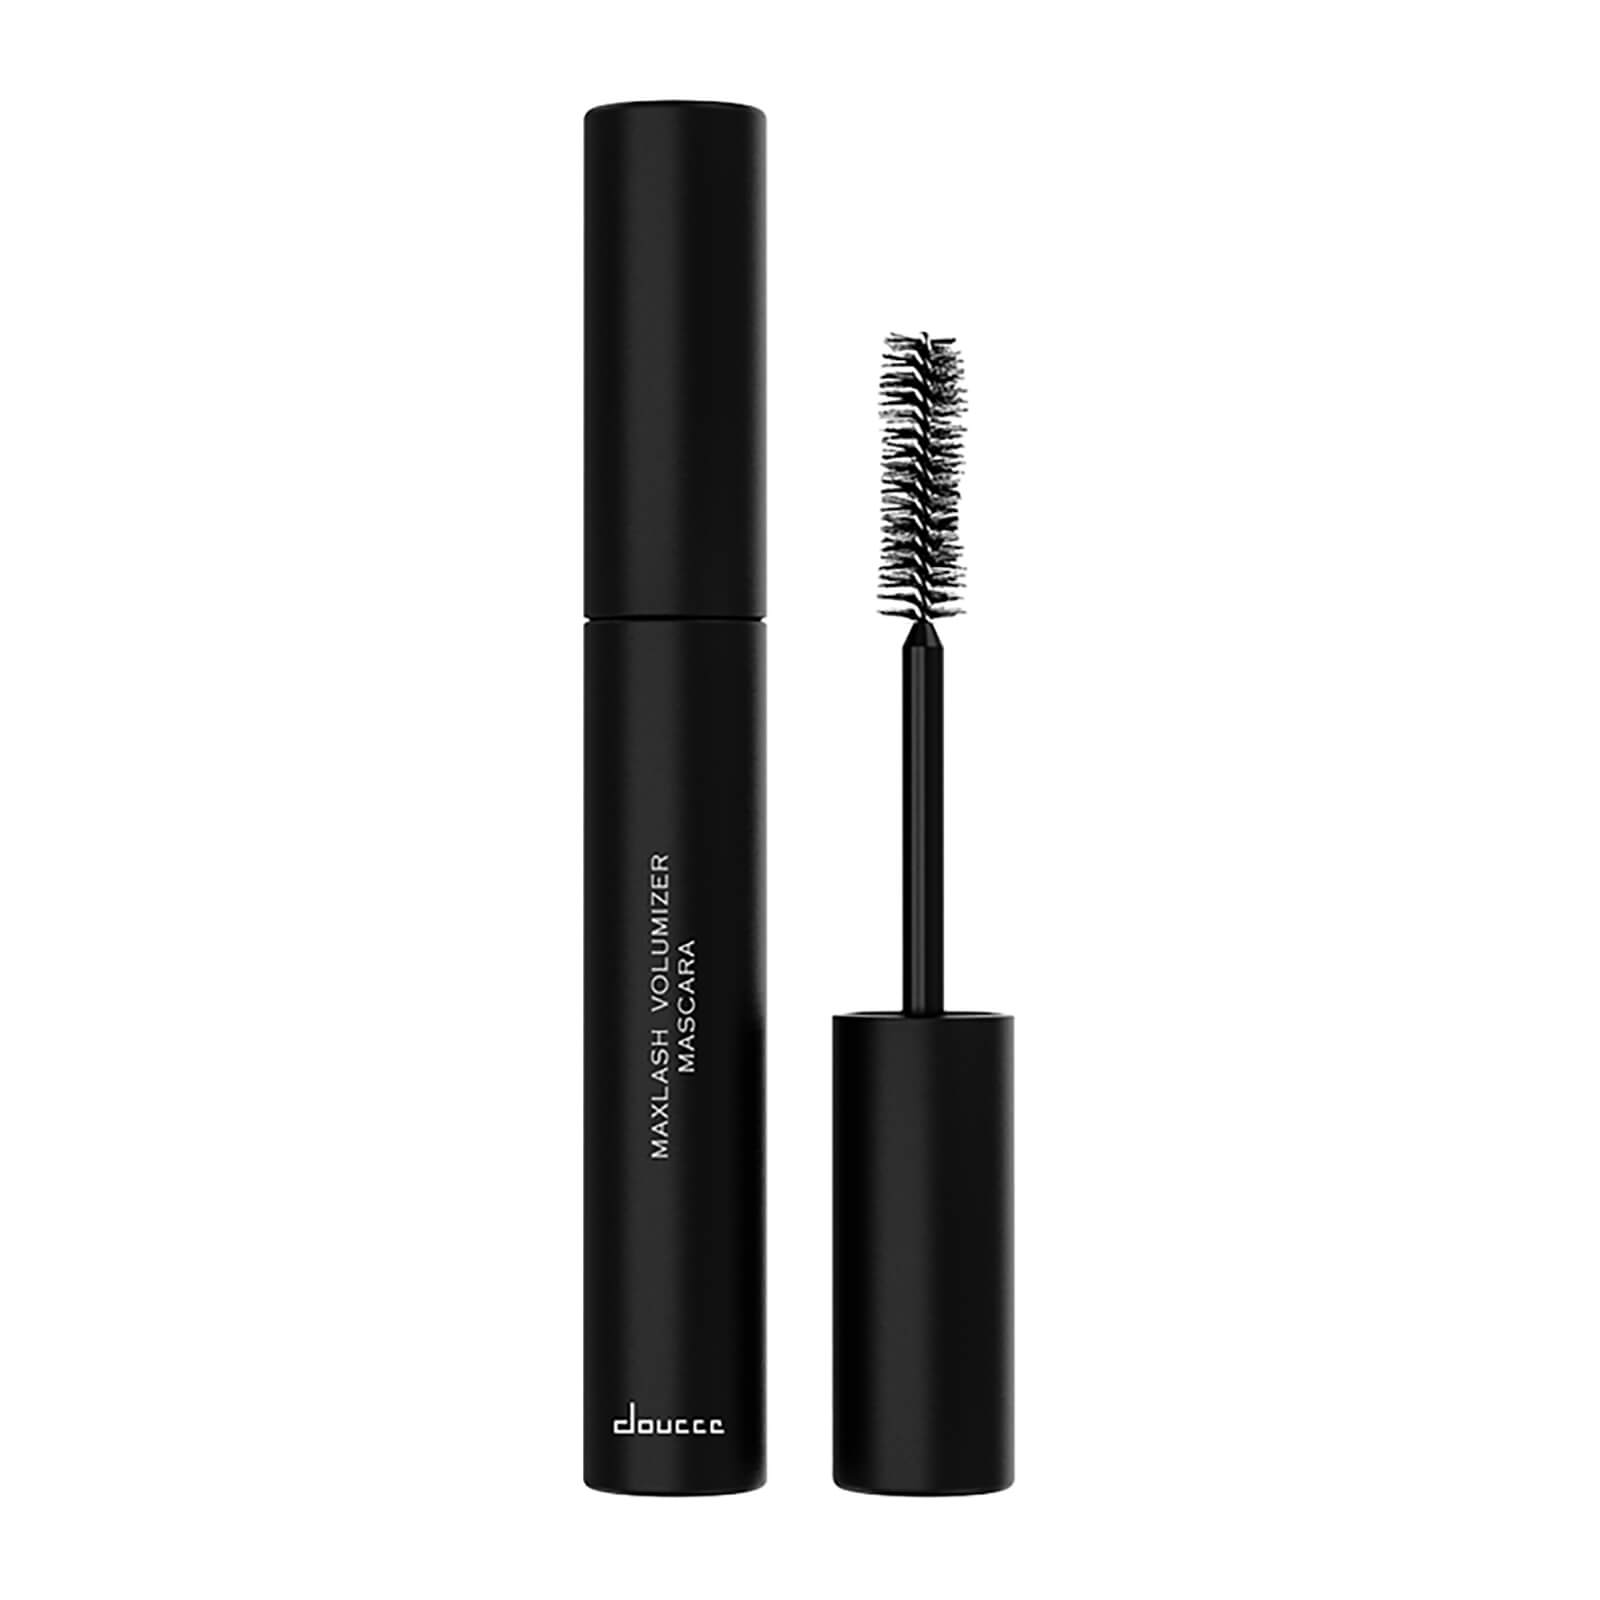 1b63ea397d3 doucce Maxlash Volumizer Mascara - Black 11.5g | Free Shipping |  Lookfantastic